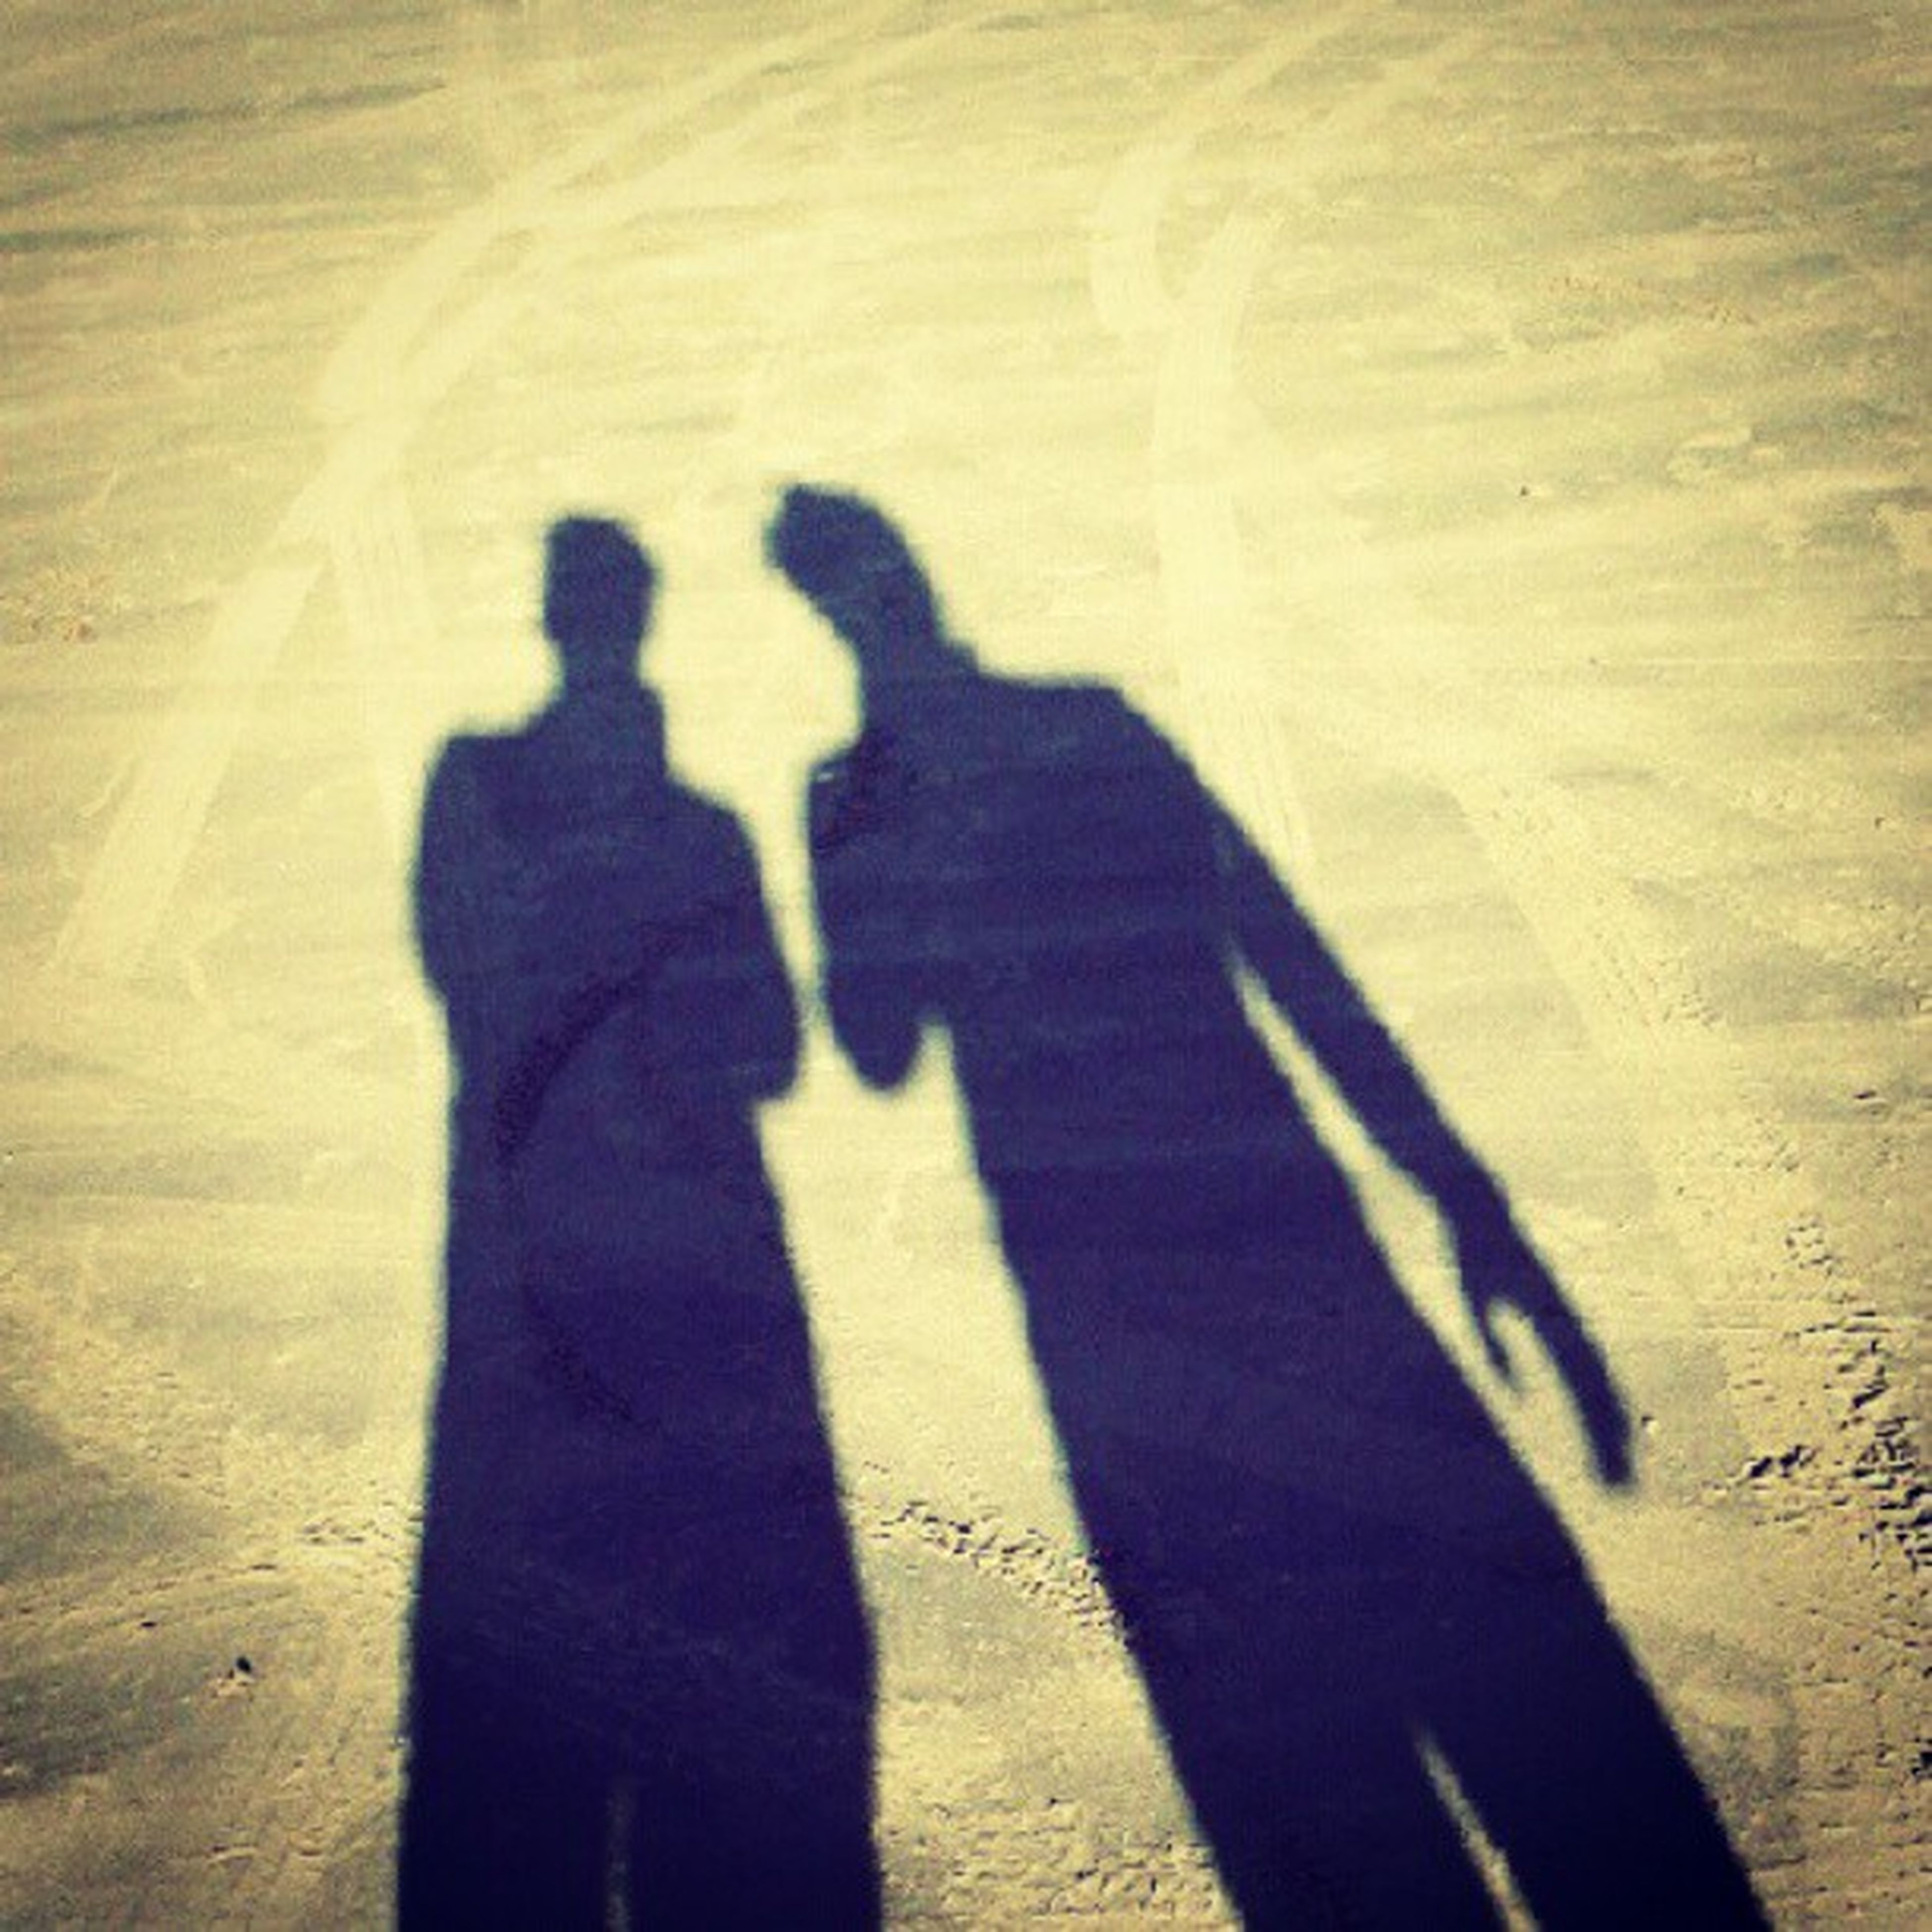 shadow, focus on shadow, lifestyles, sunlight, men, leisure activity, high angle view, togetherness, bonding, silhouette, love, standing, unrecognizable person, person, outline, outdoors, day